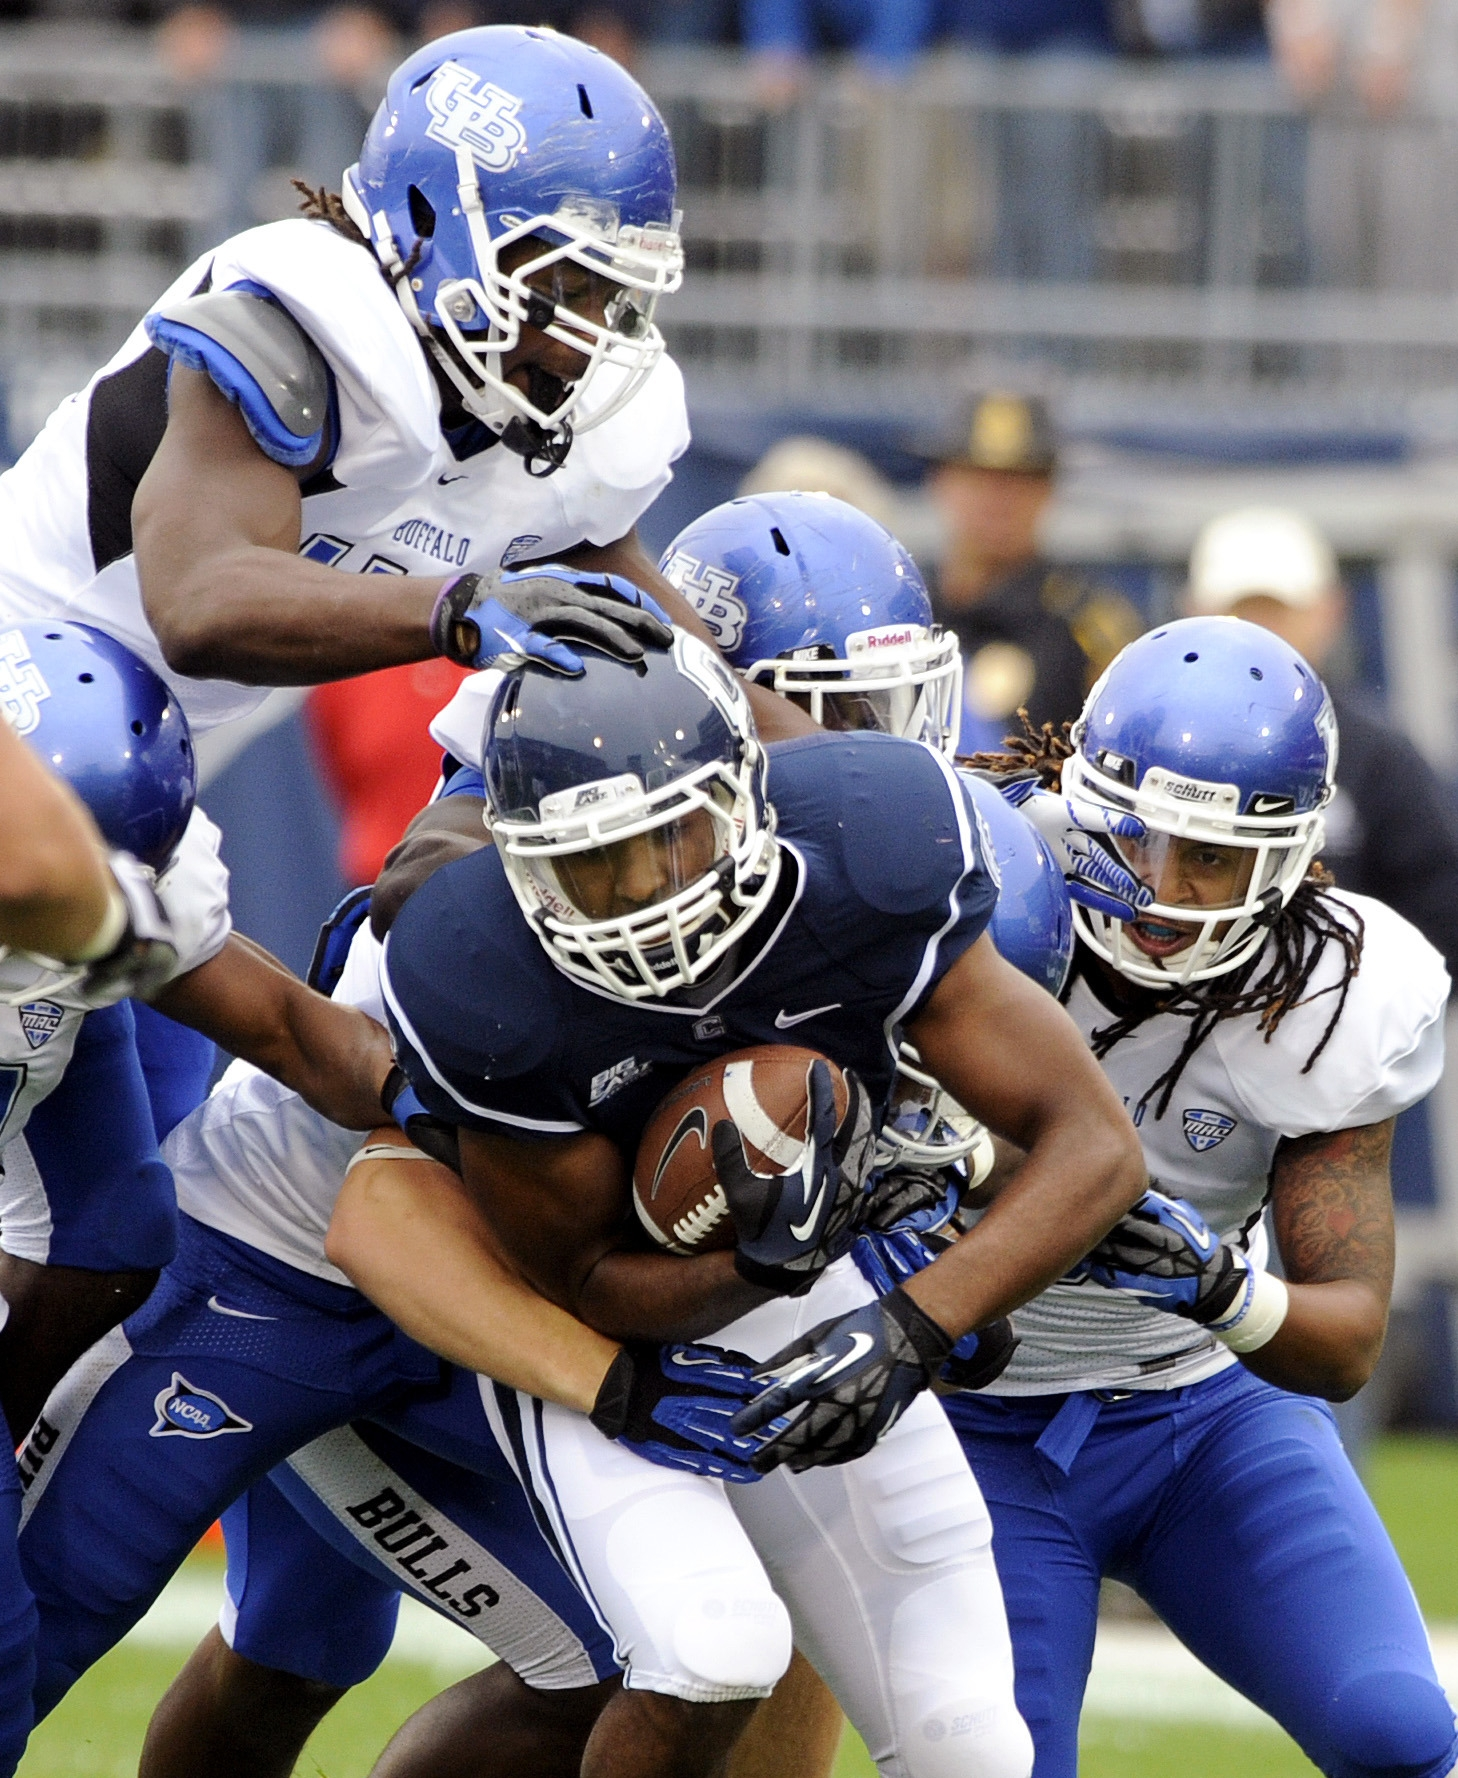 Associated Press    Connecticut tailback Lyle McCombs is gang tackled by a swarm of UB defenders in the first half of the Bulls' 24-17 loss to UConn on Saturday.